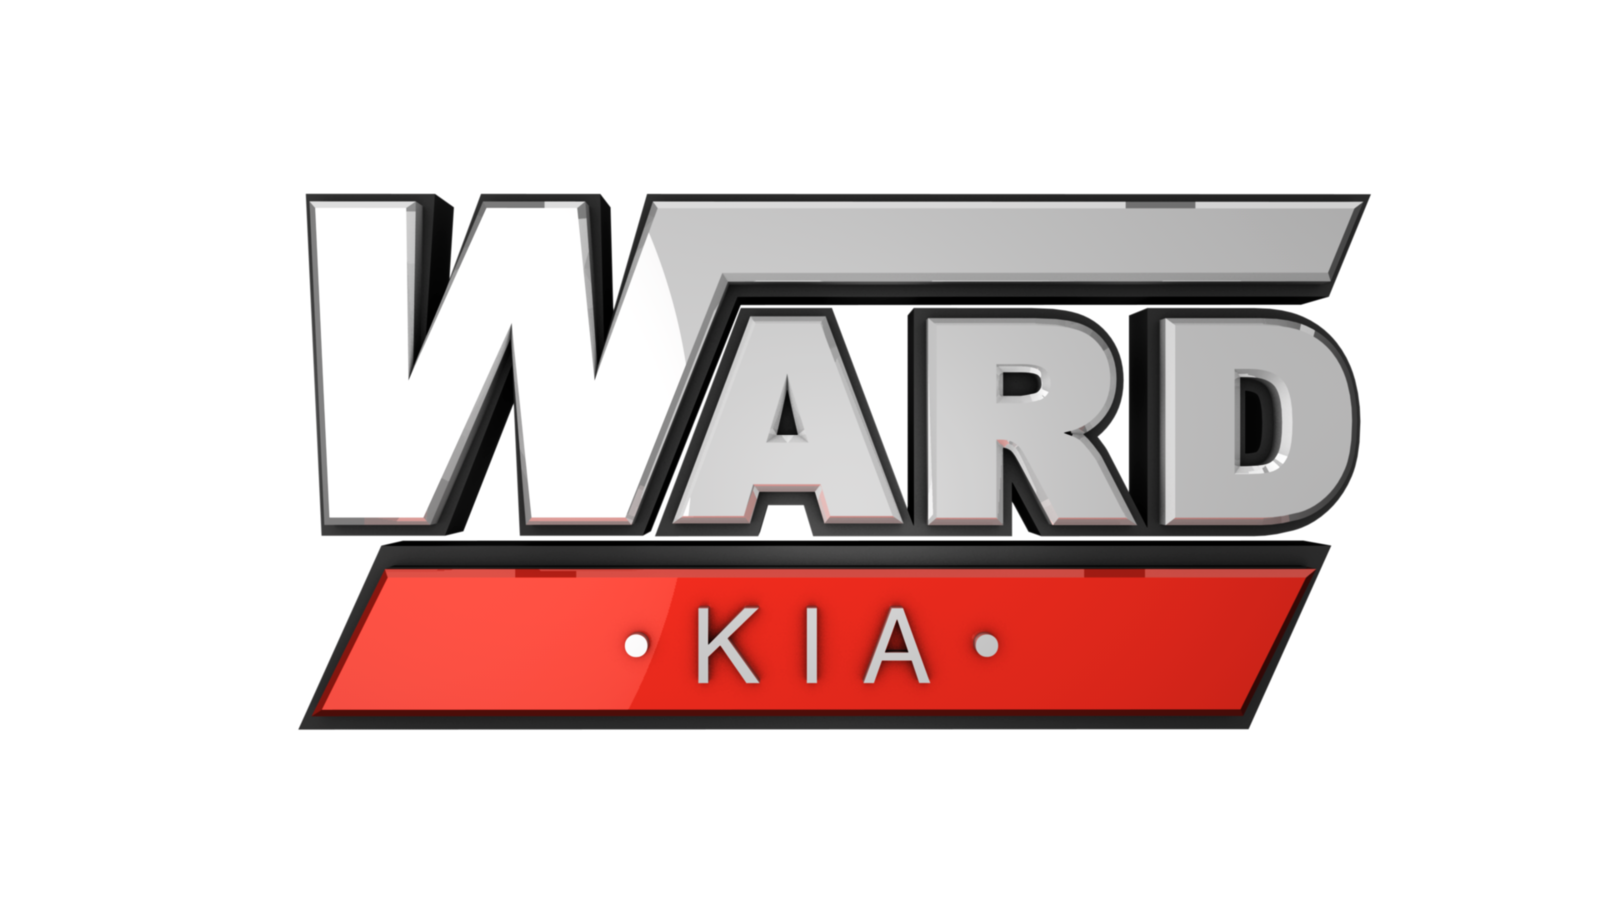 Delightful Ward Kia   Carbondale, IL: Read Consumer Reviews, Browse Used And New Cars  For Sale